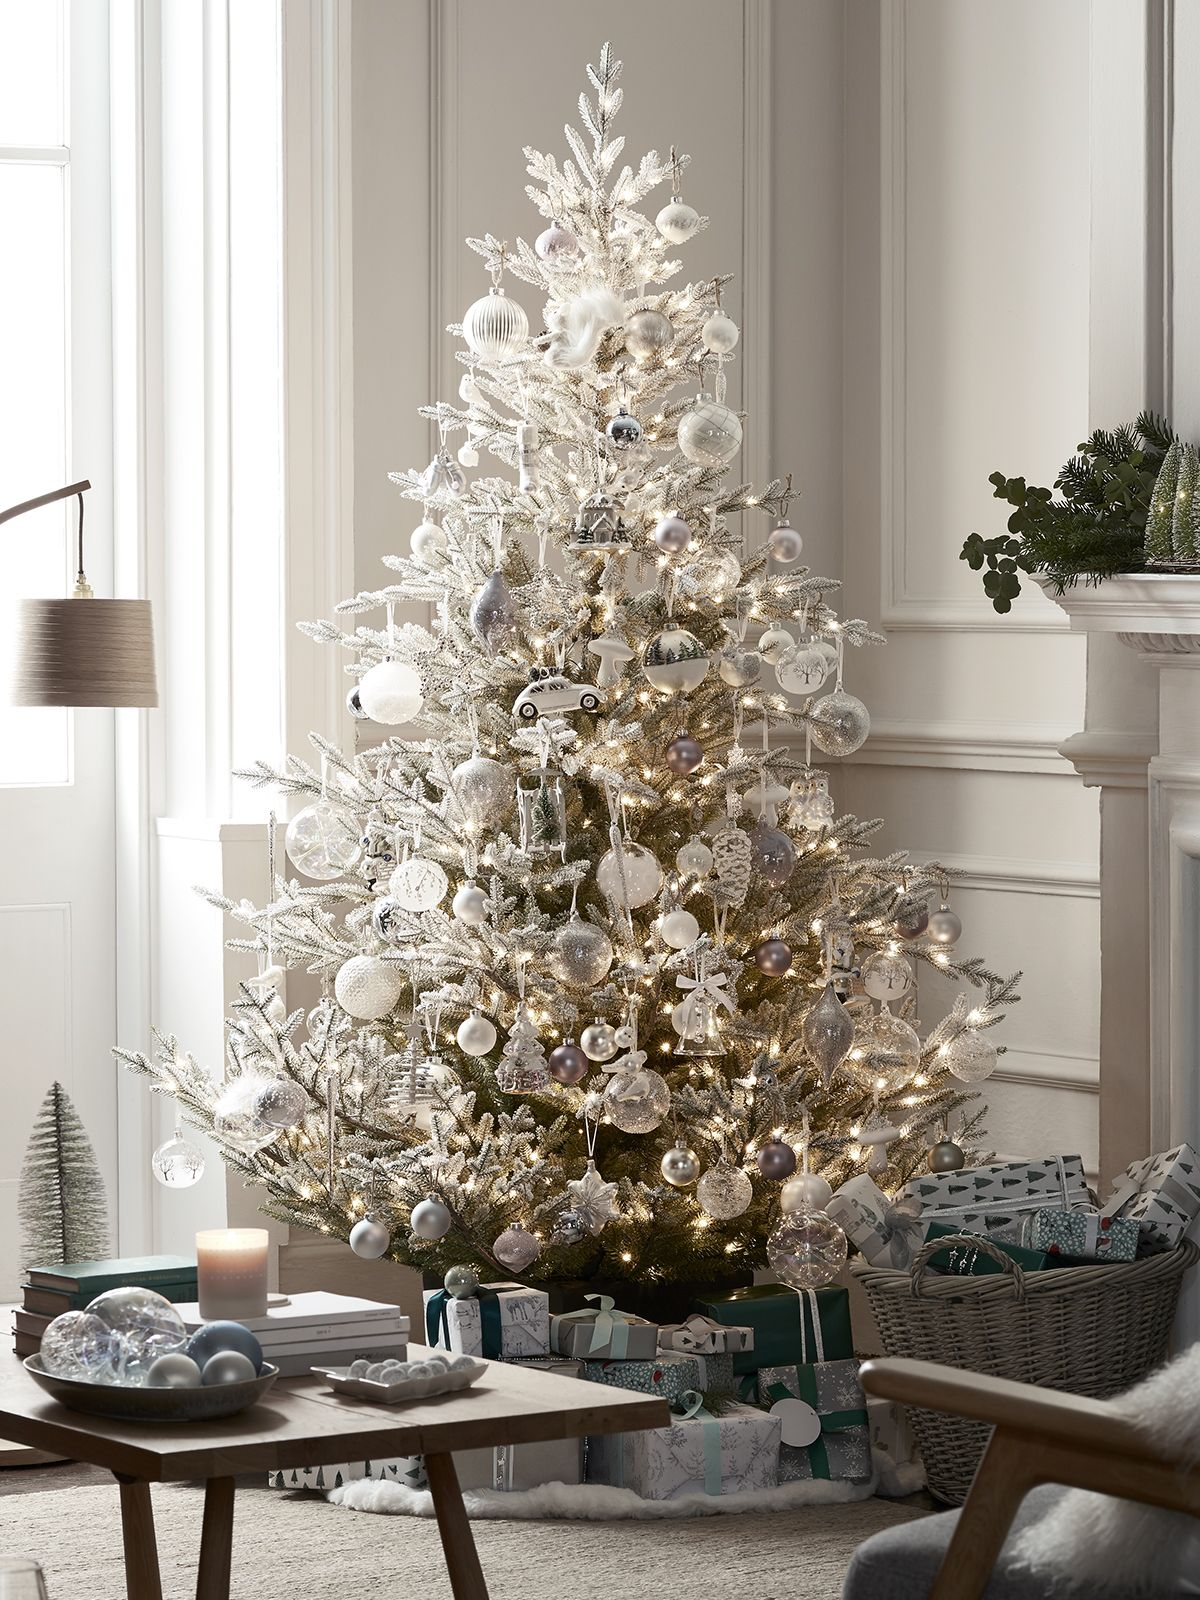 Beautiful Christmas tree decorated with white and silver baubles